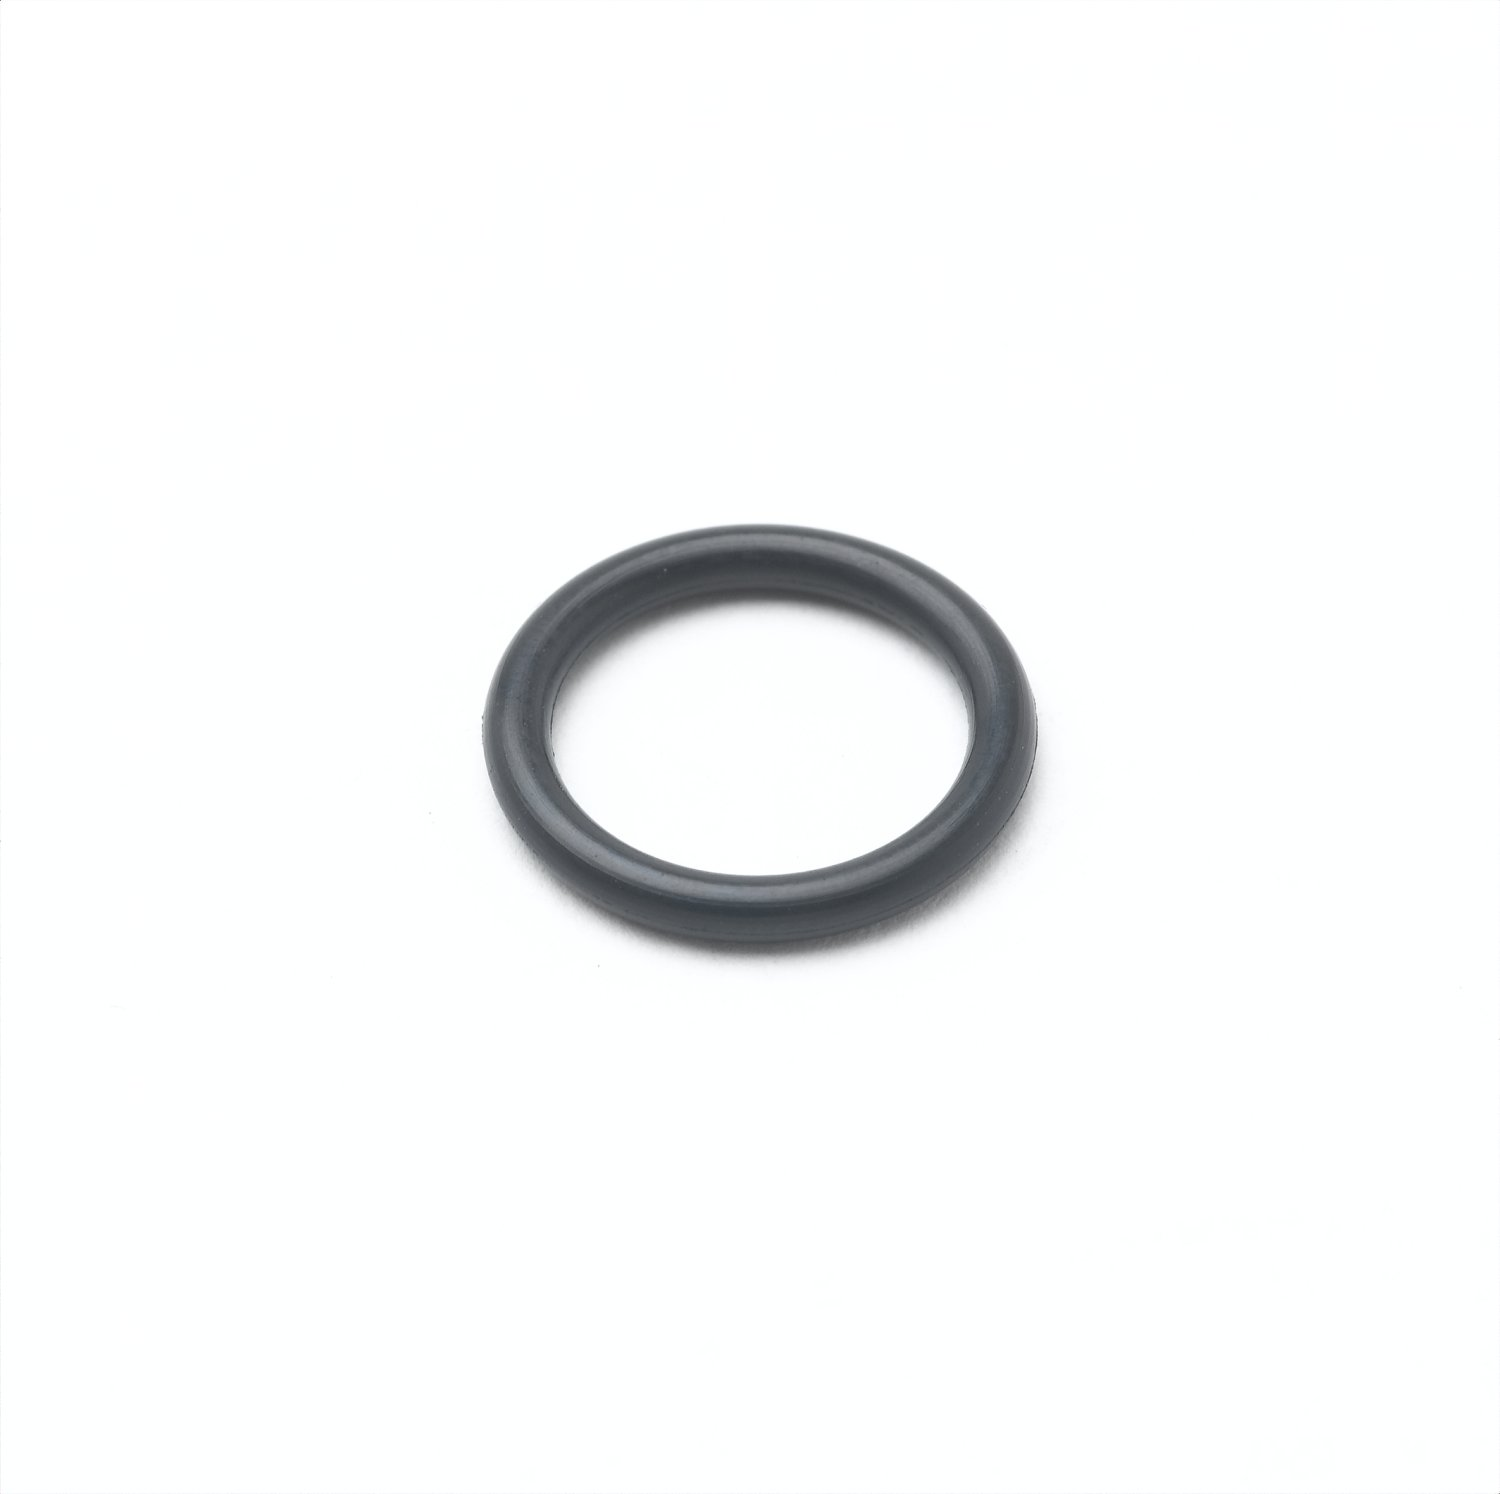 T&S Brass 001065-45 O-Ring Nitrile, Size 2-112